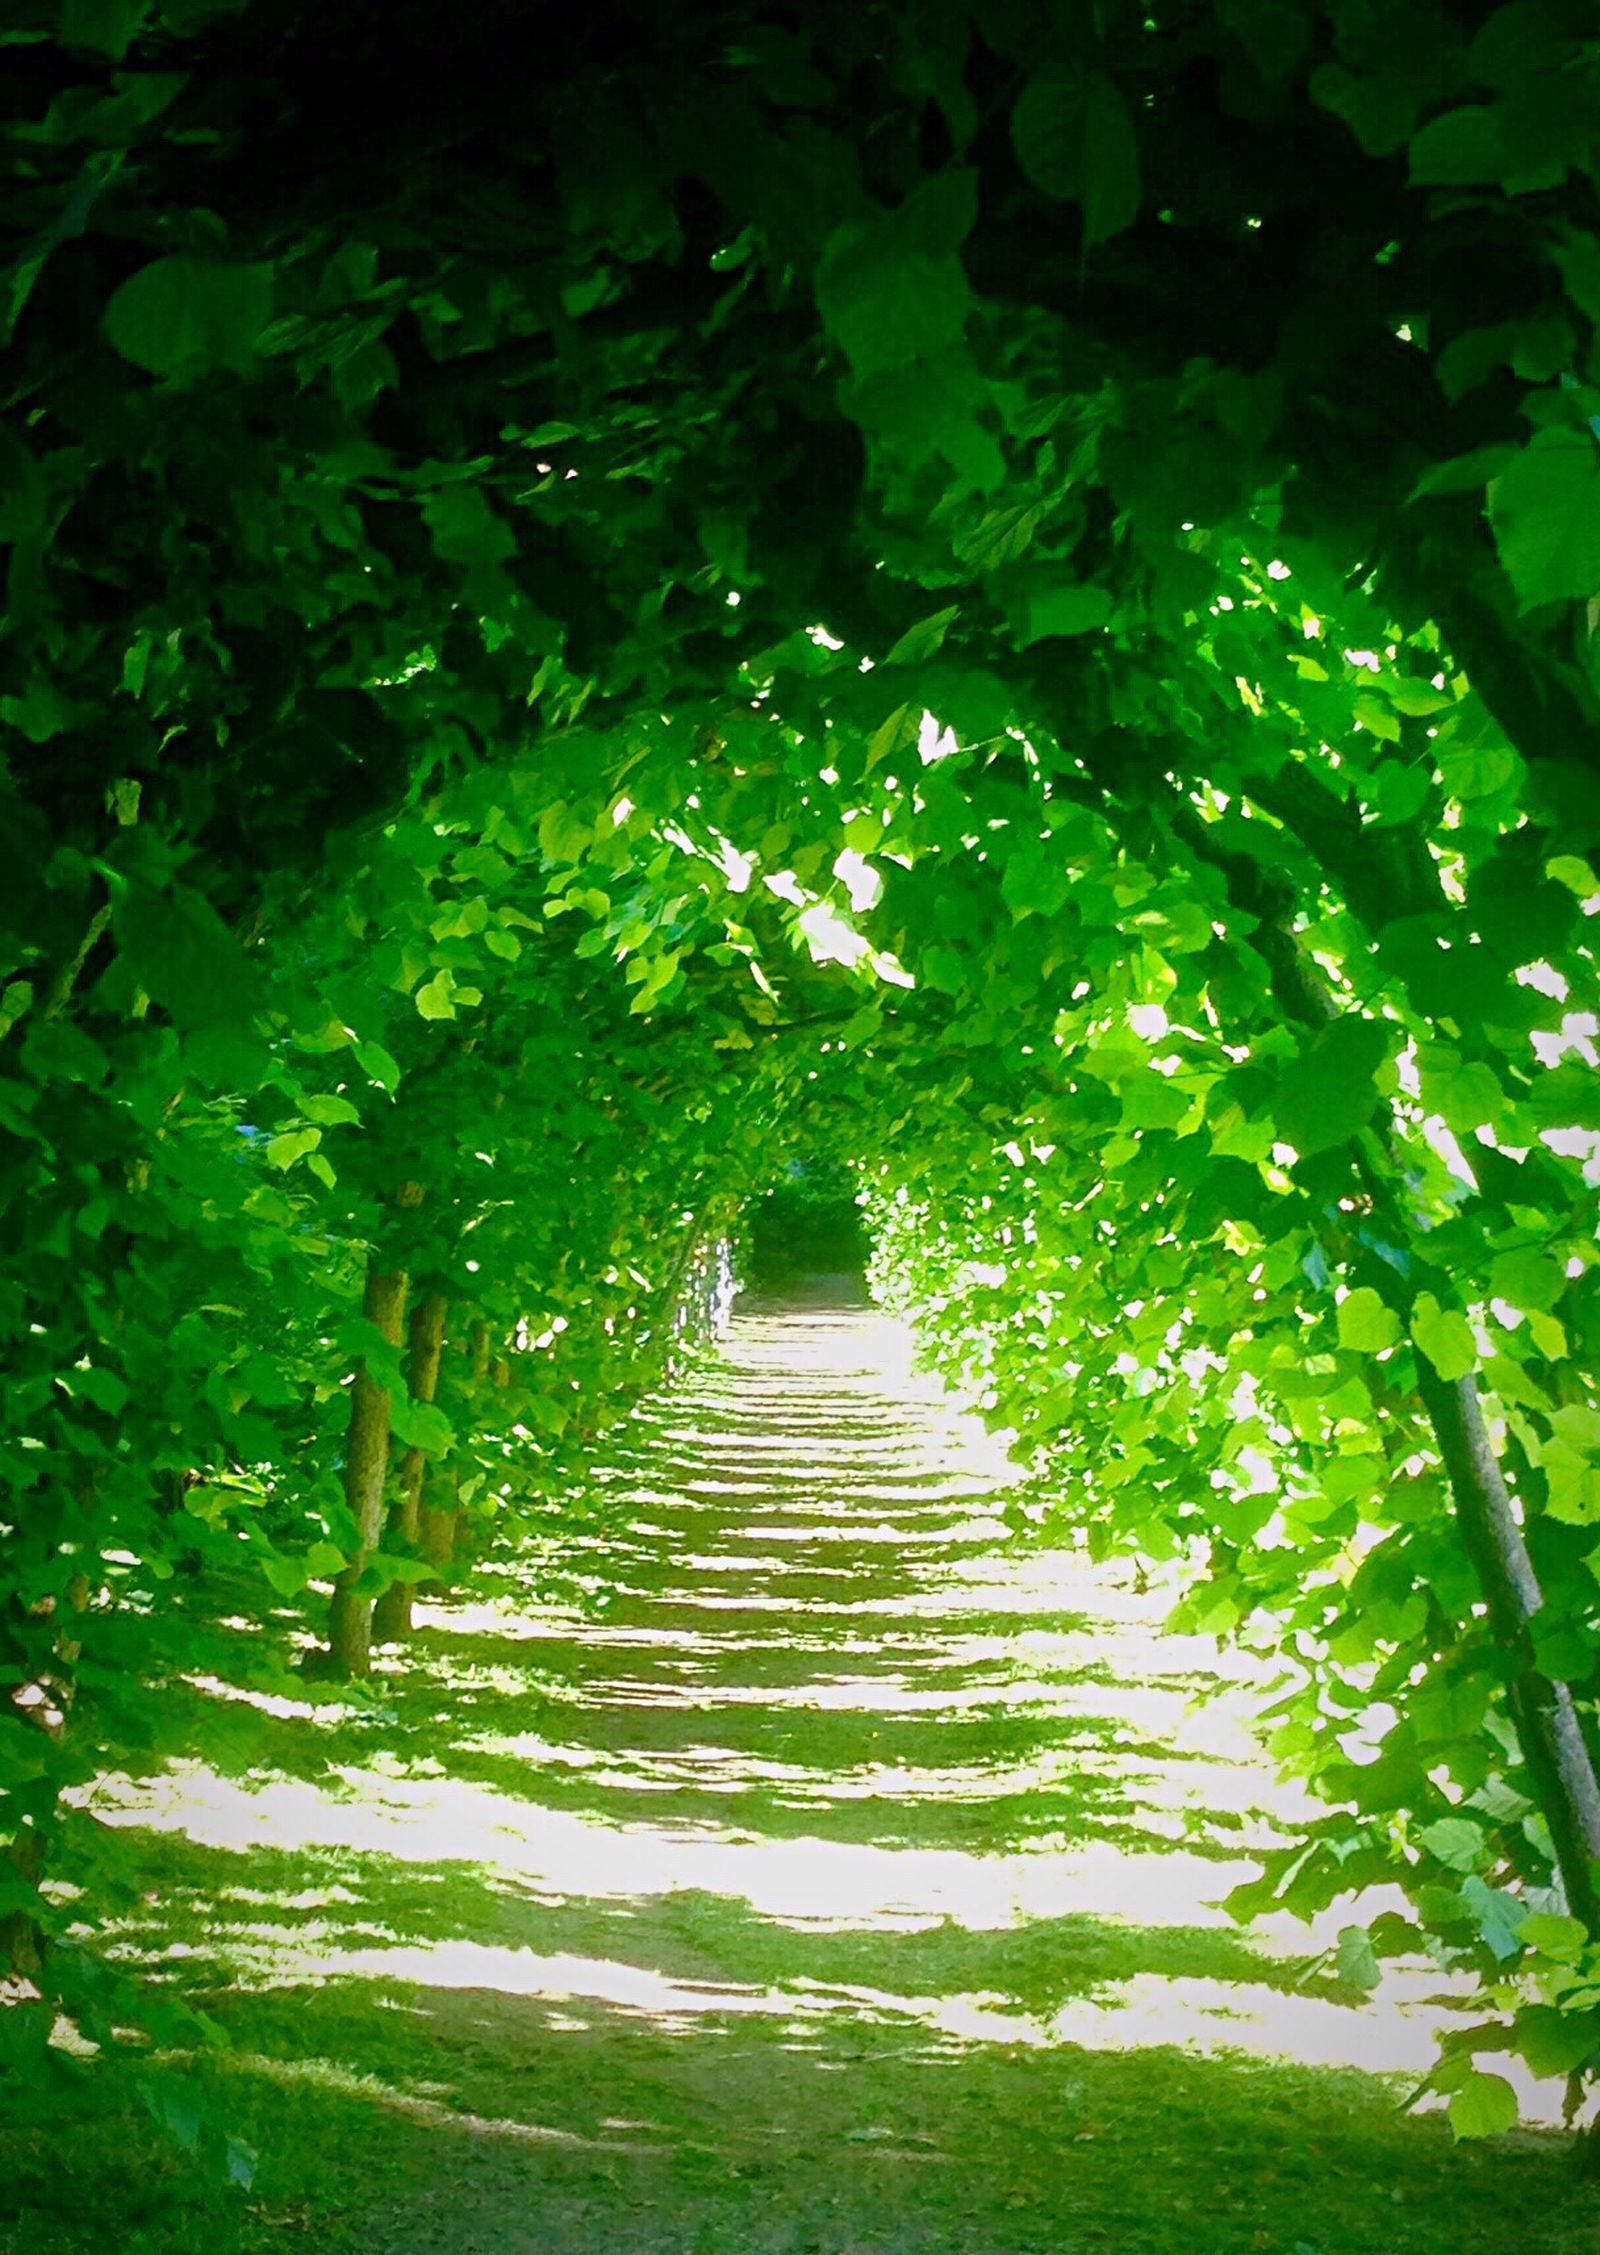 Tunnel, Green Color Nature Leaf Beauty In Nature Lush Foliage Growth No People Outdoors Plant Tranquility Day Close-up Scenics Freshness Light And Shadow Hamburg Hamburgmeineperle Shadows & Lights Park Landscape Wachokderpark Pergole